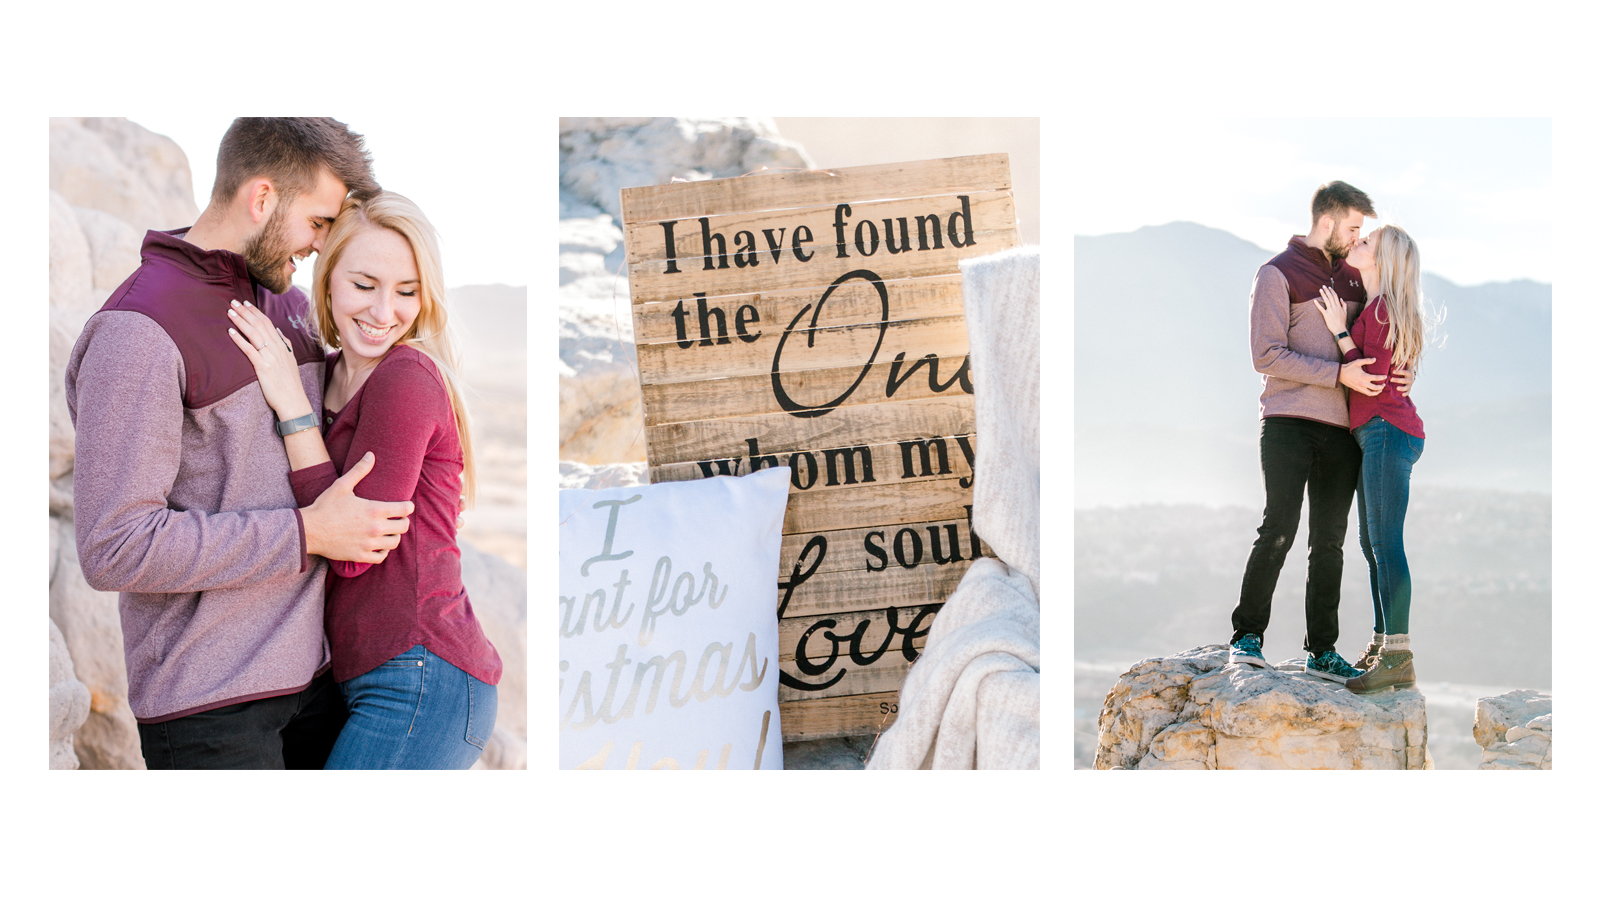 michele with one L photography | Colorado Springs Proposal | Colorado Wedding Photographer.jpg